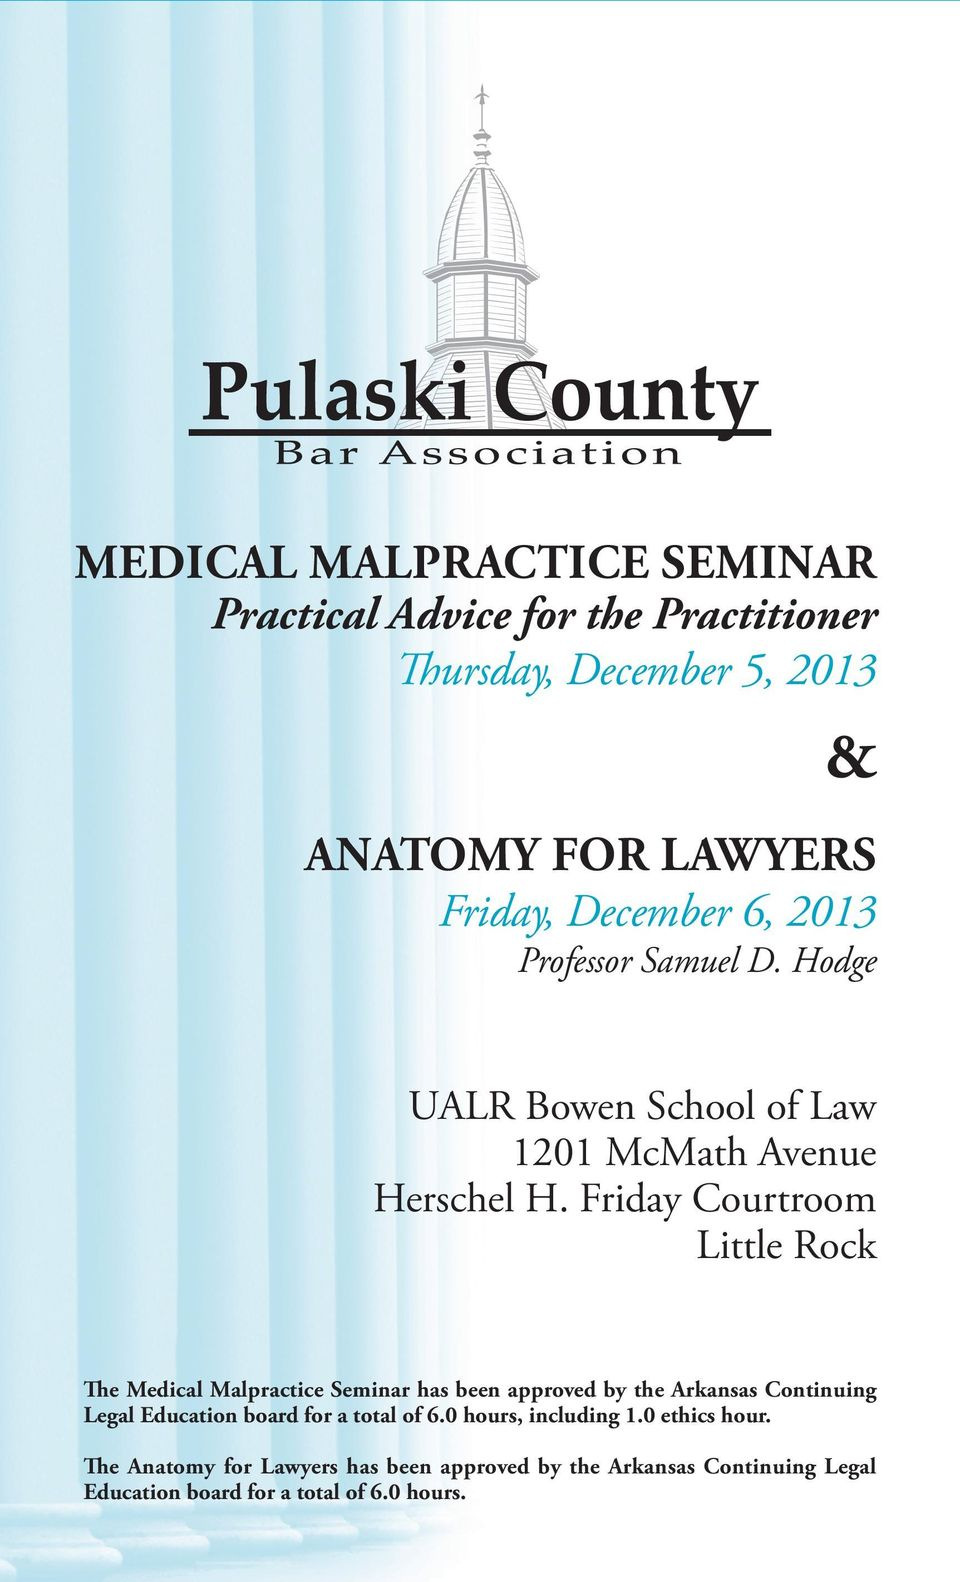 Friday Courtroom Little Rock e medical malpractice seminar has been approved by the arkansas continuing legal education board